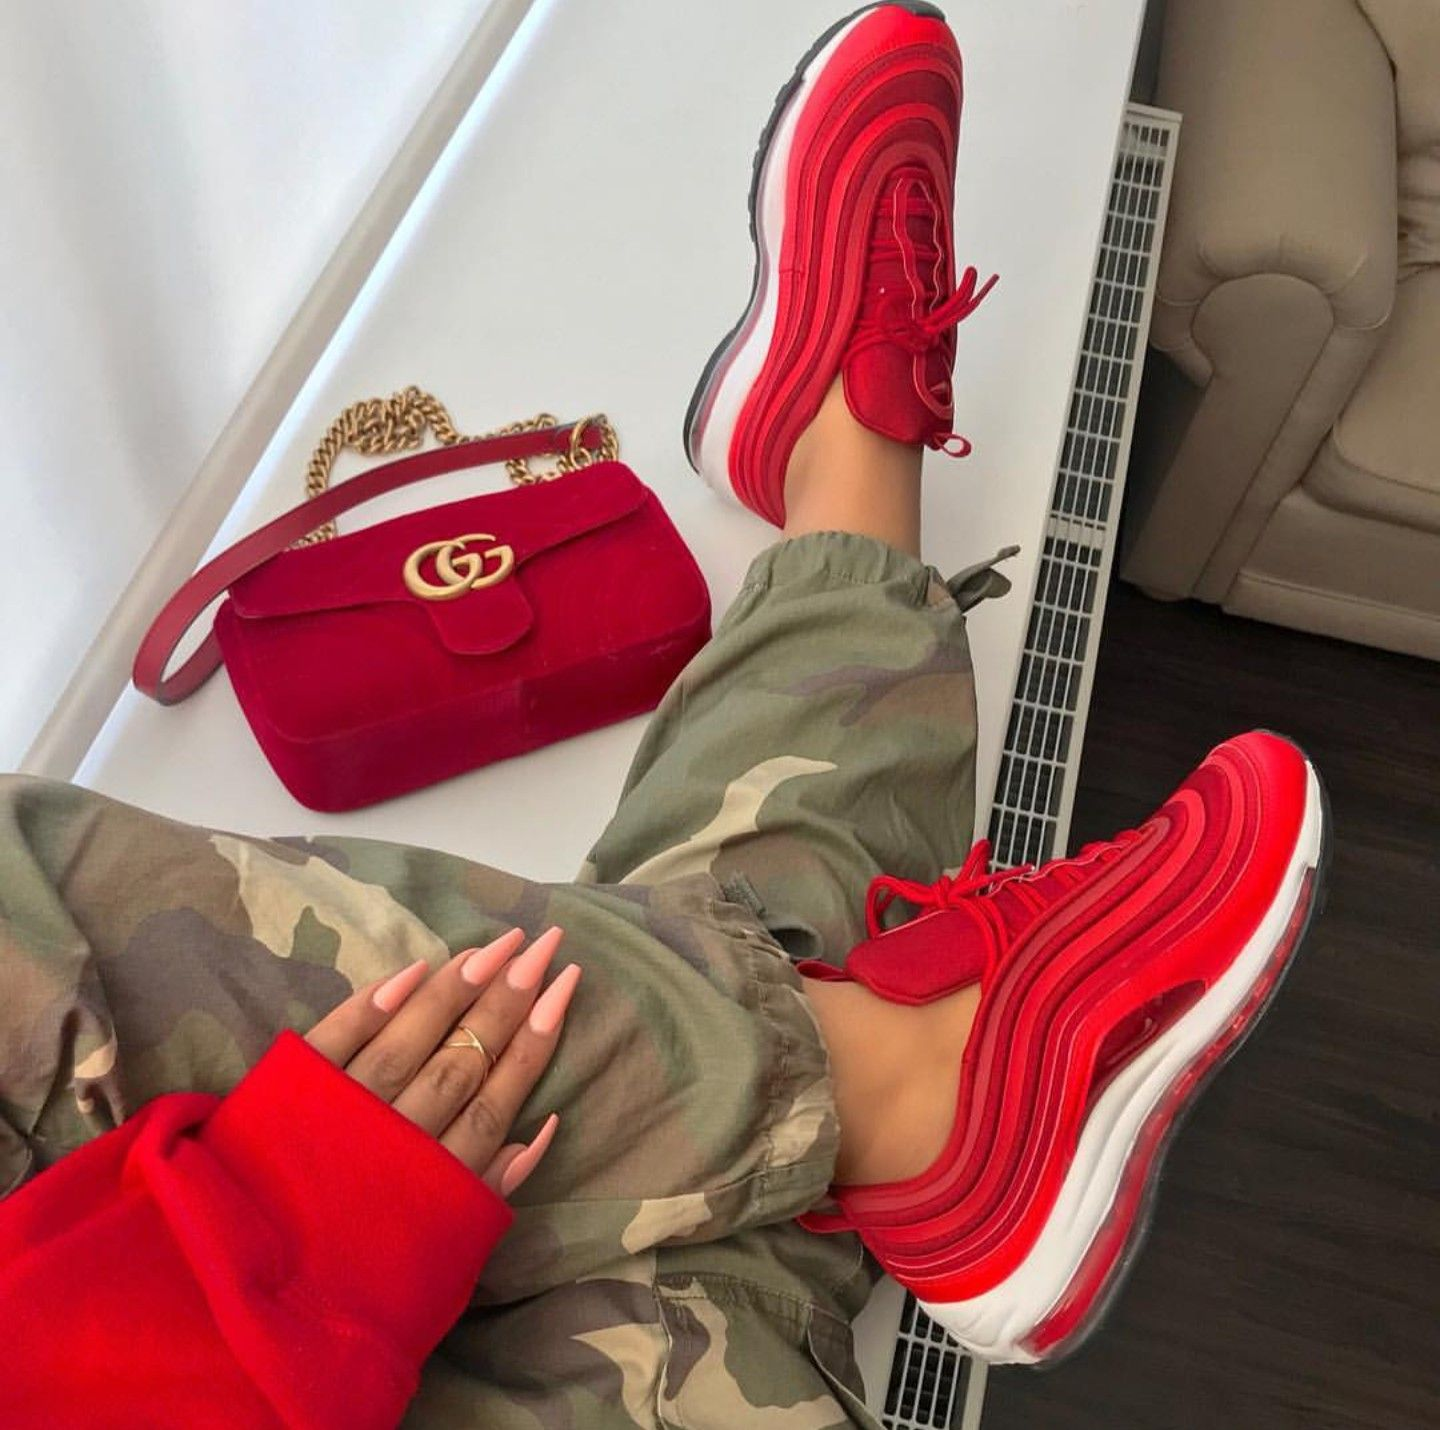 Follow Tryyveaytyѕ For More Rorrin Pins Sneakers Fashion